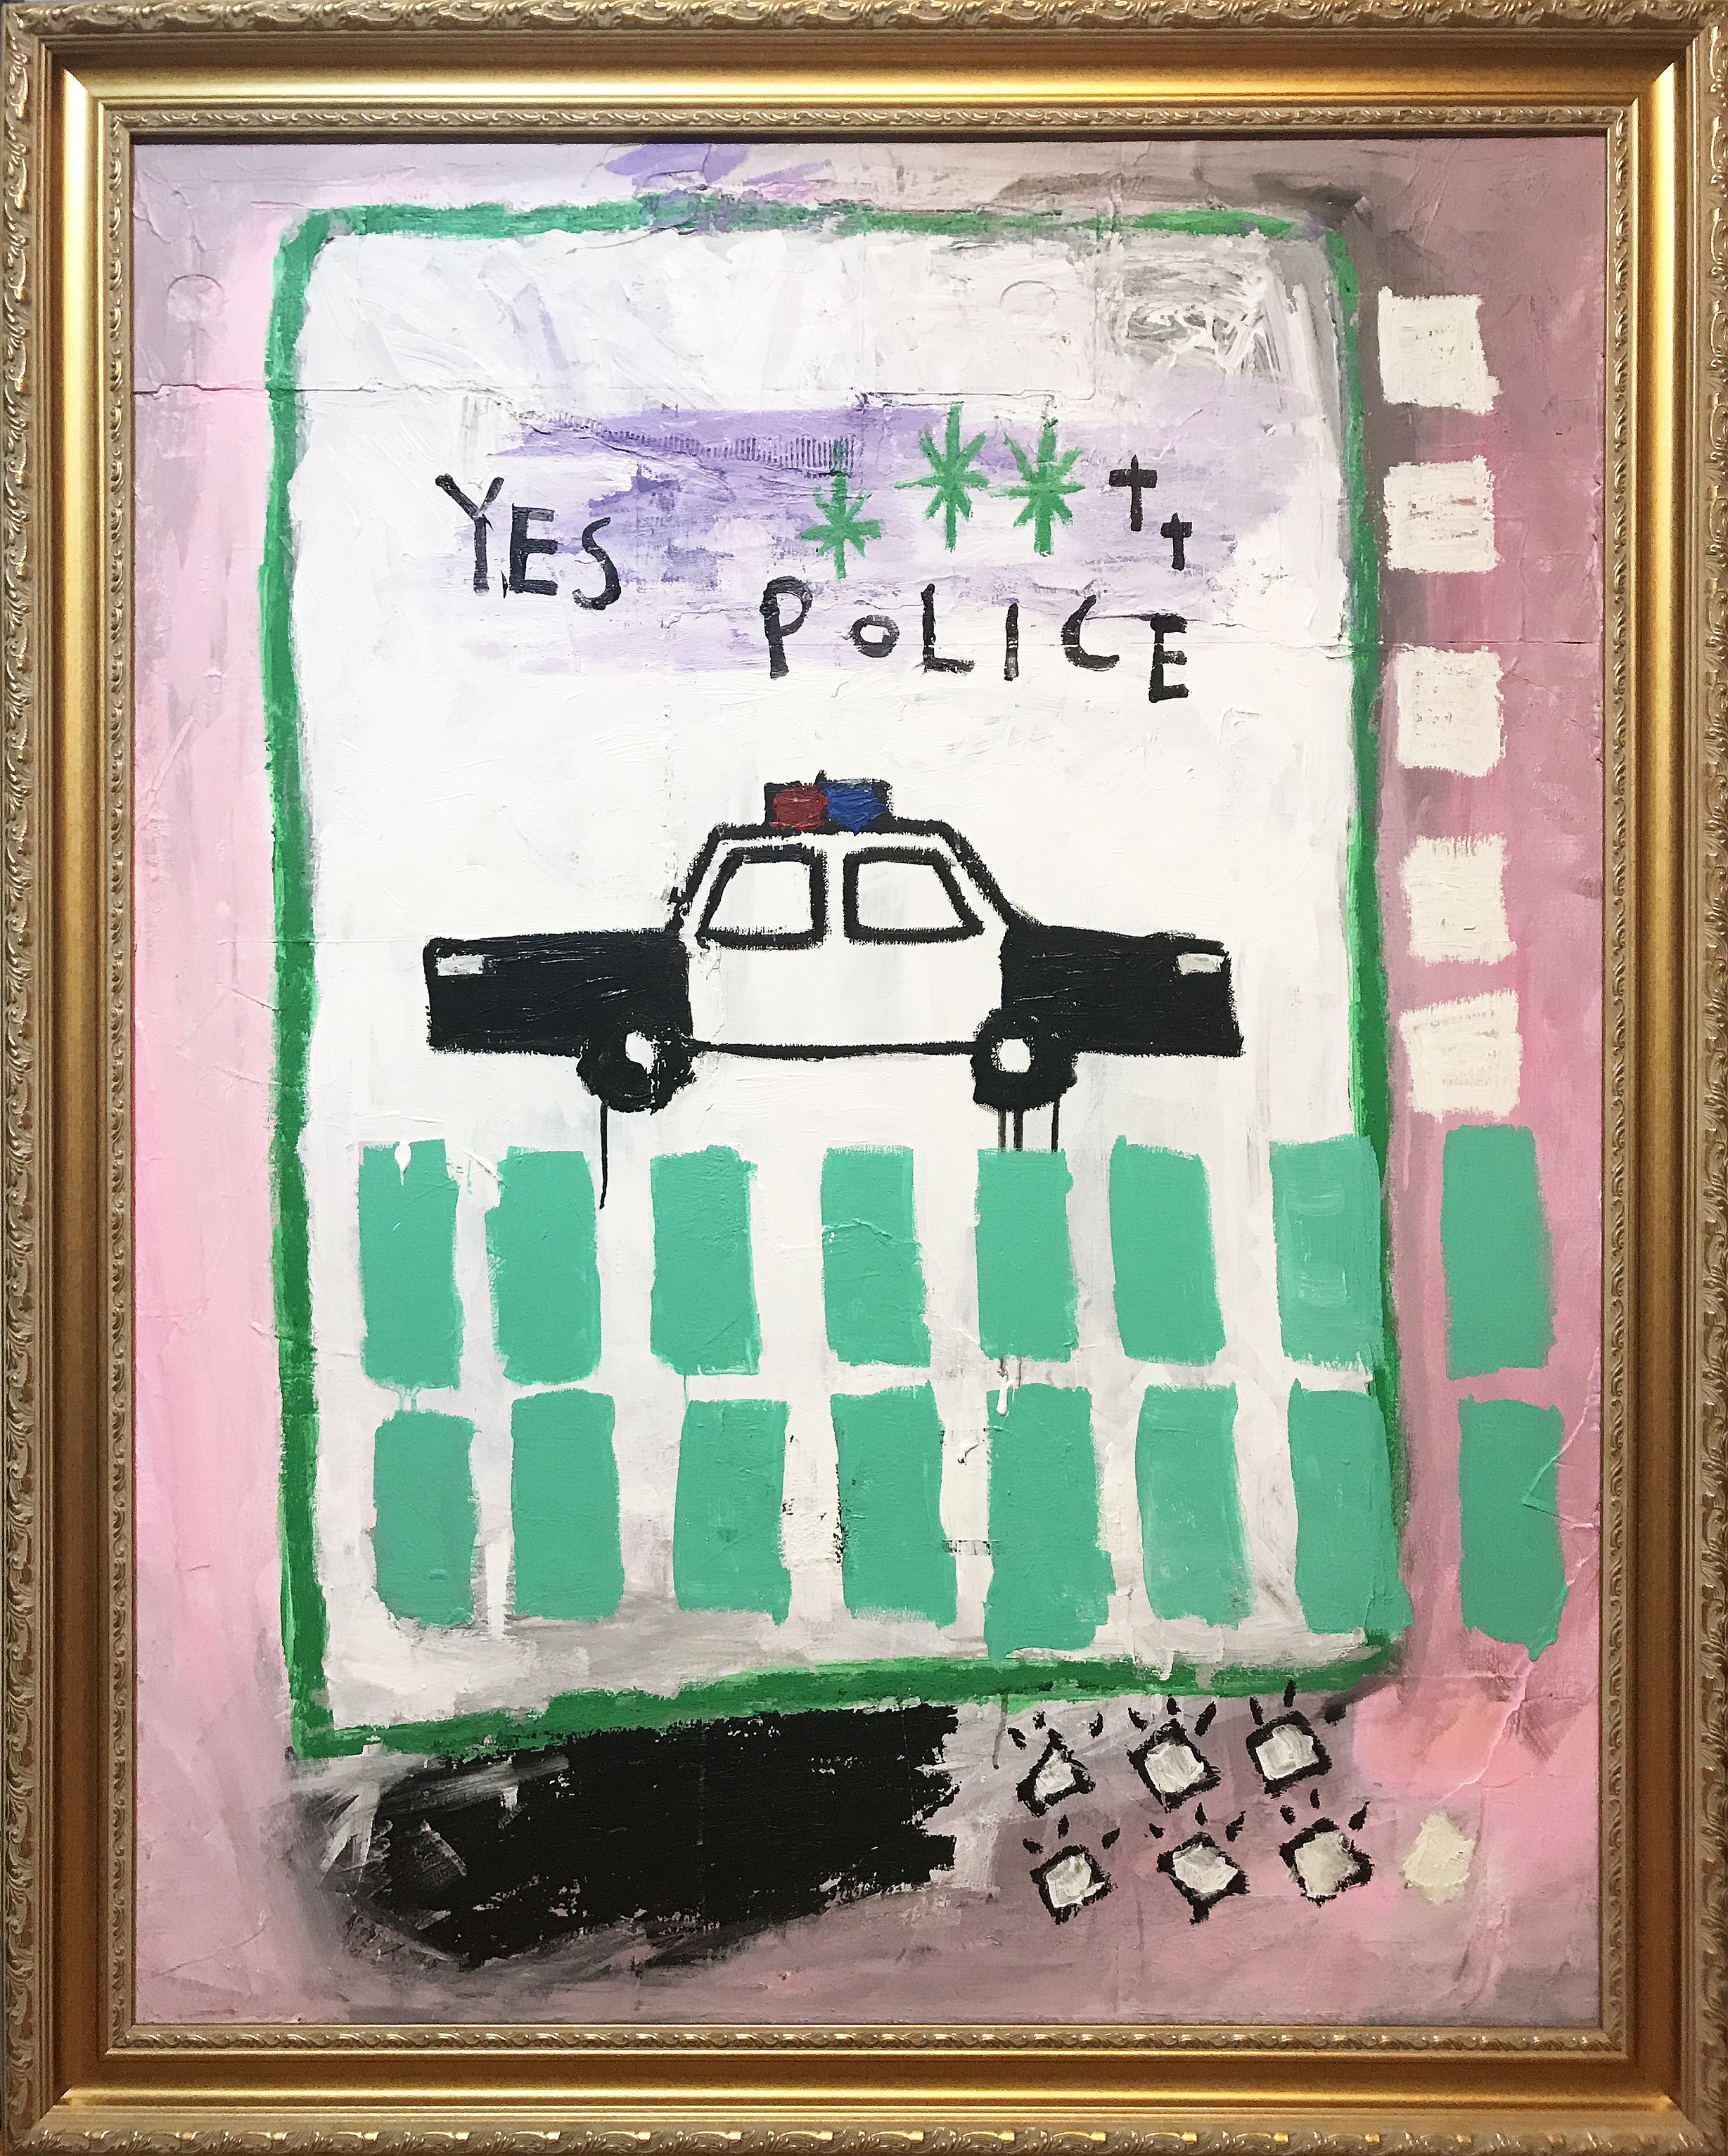 Yes Police 2017